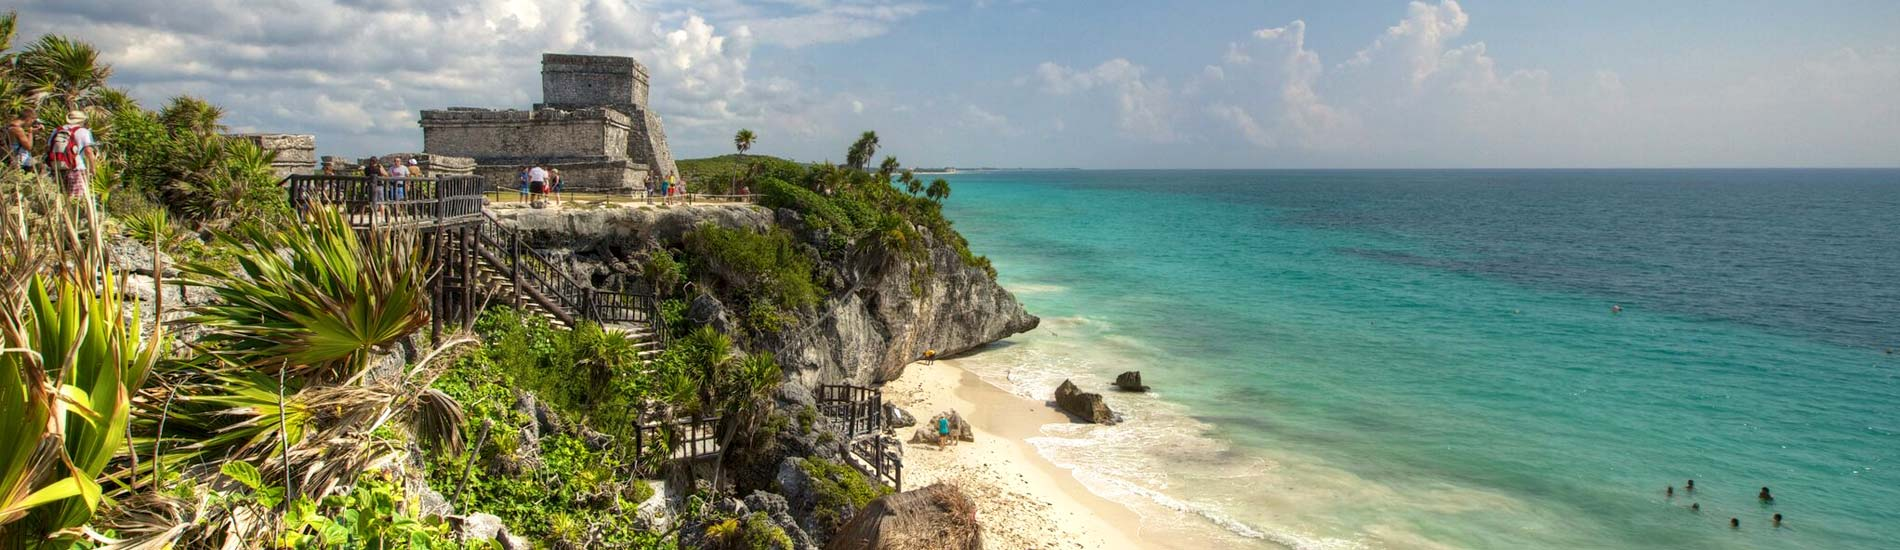 Experience Luxury Riviera Maya Tulum And Cancun Journey Mexico